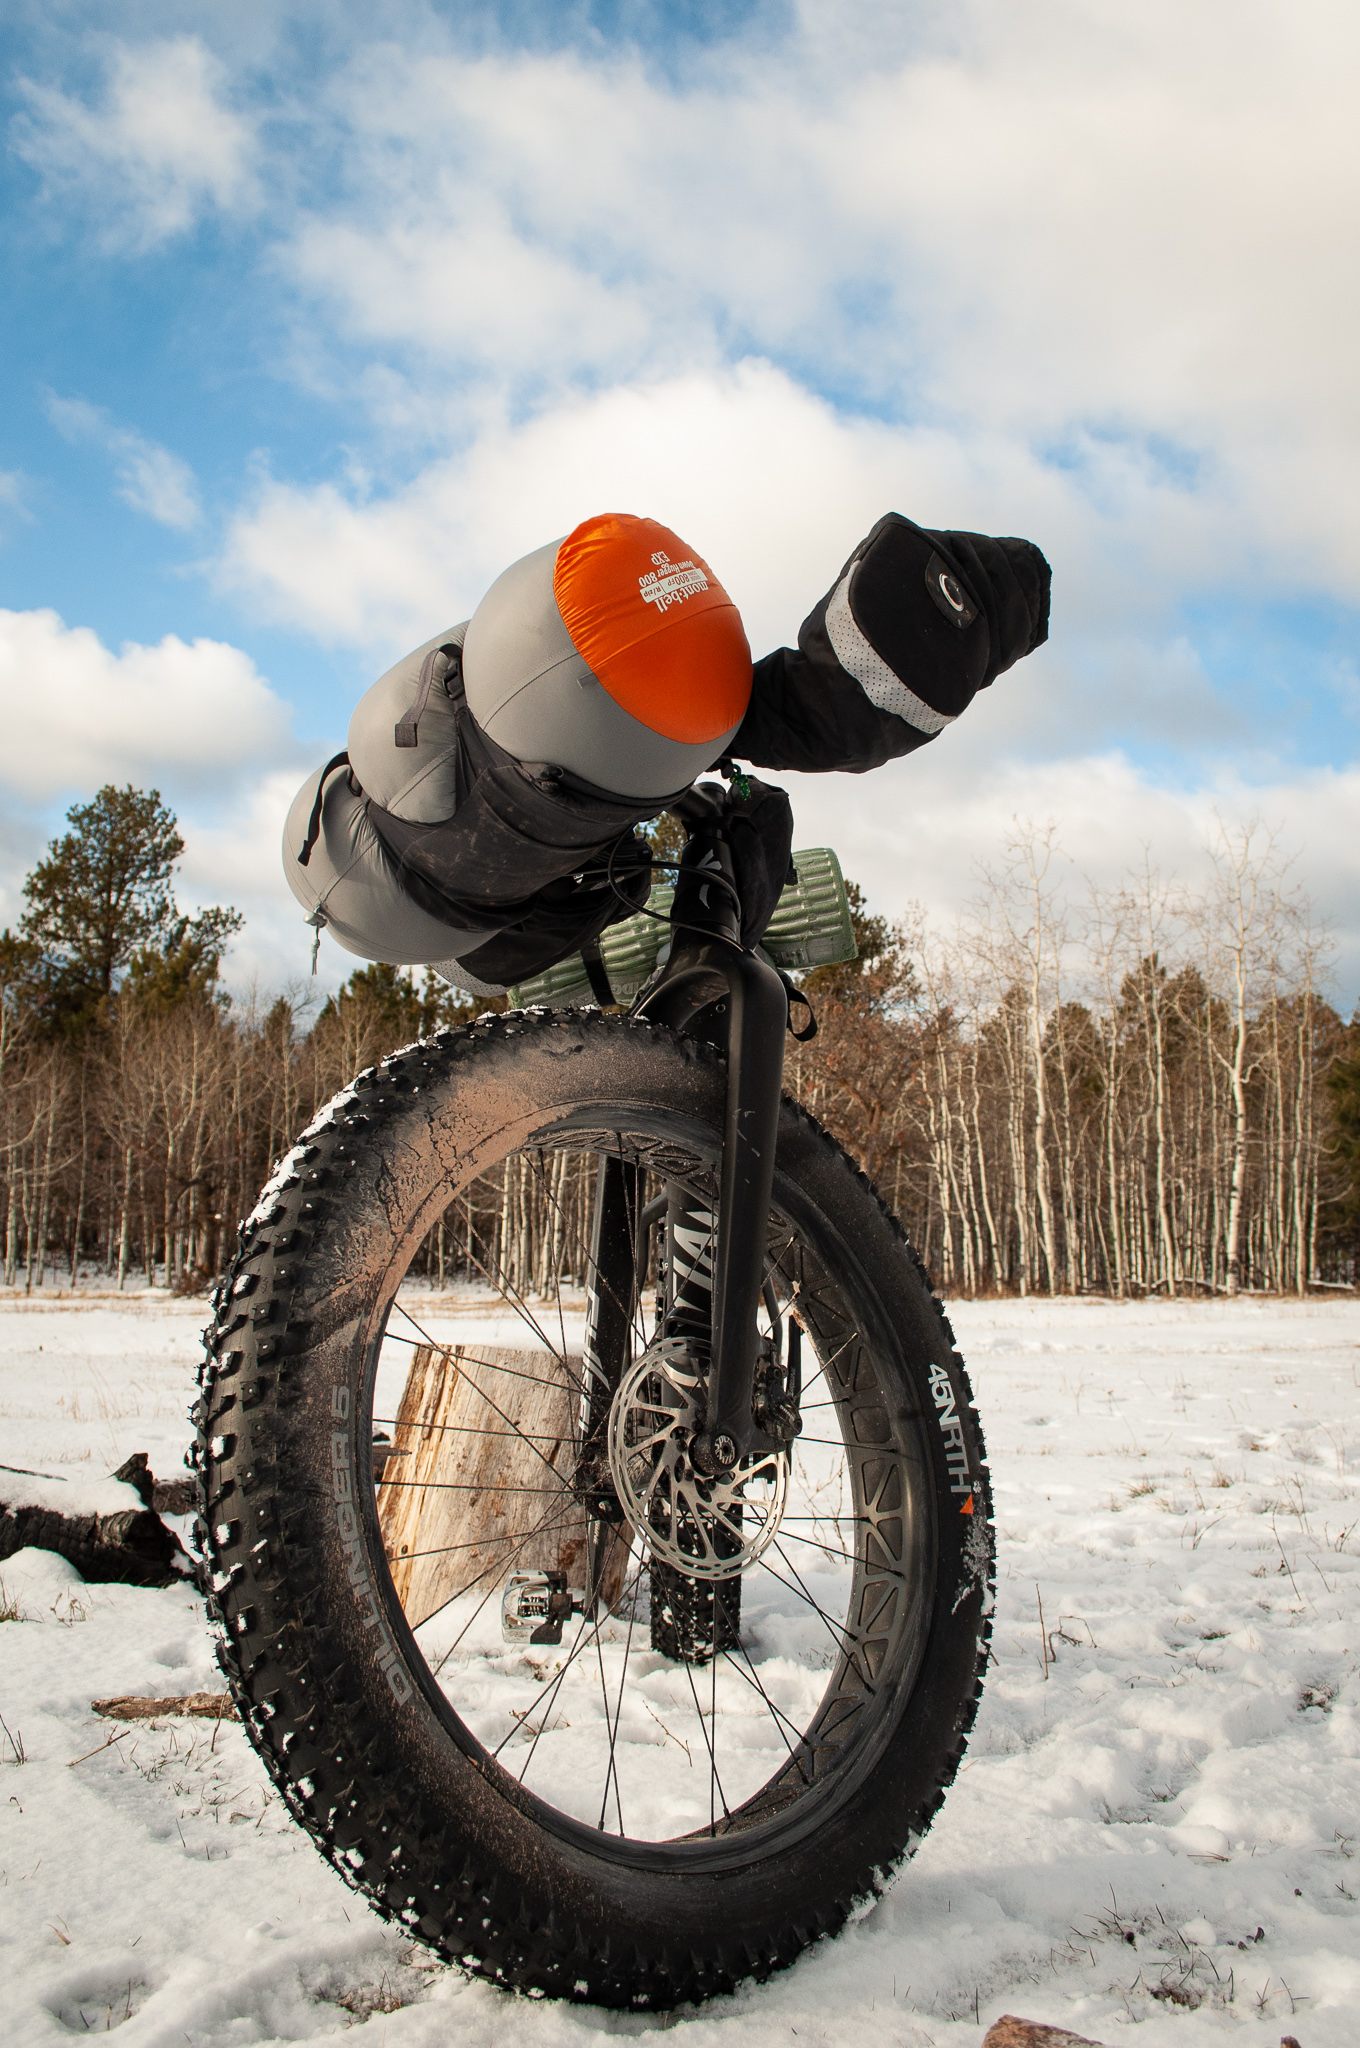 45NRTH Dillinger 5's - featured on a Specialized FatBoy and tearing through the first snow of the season